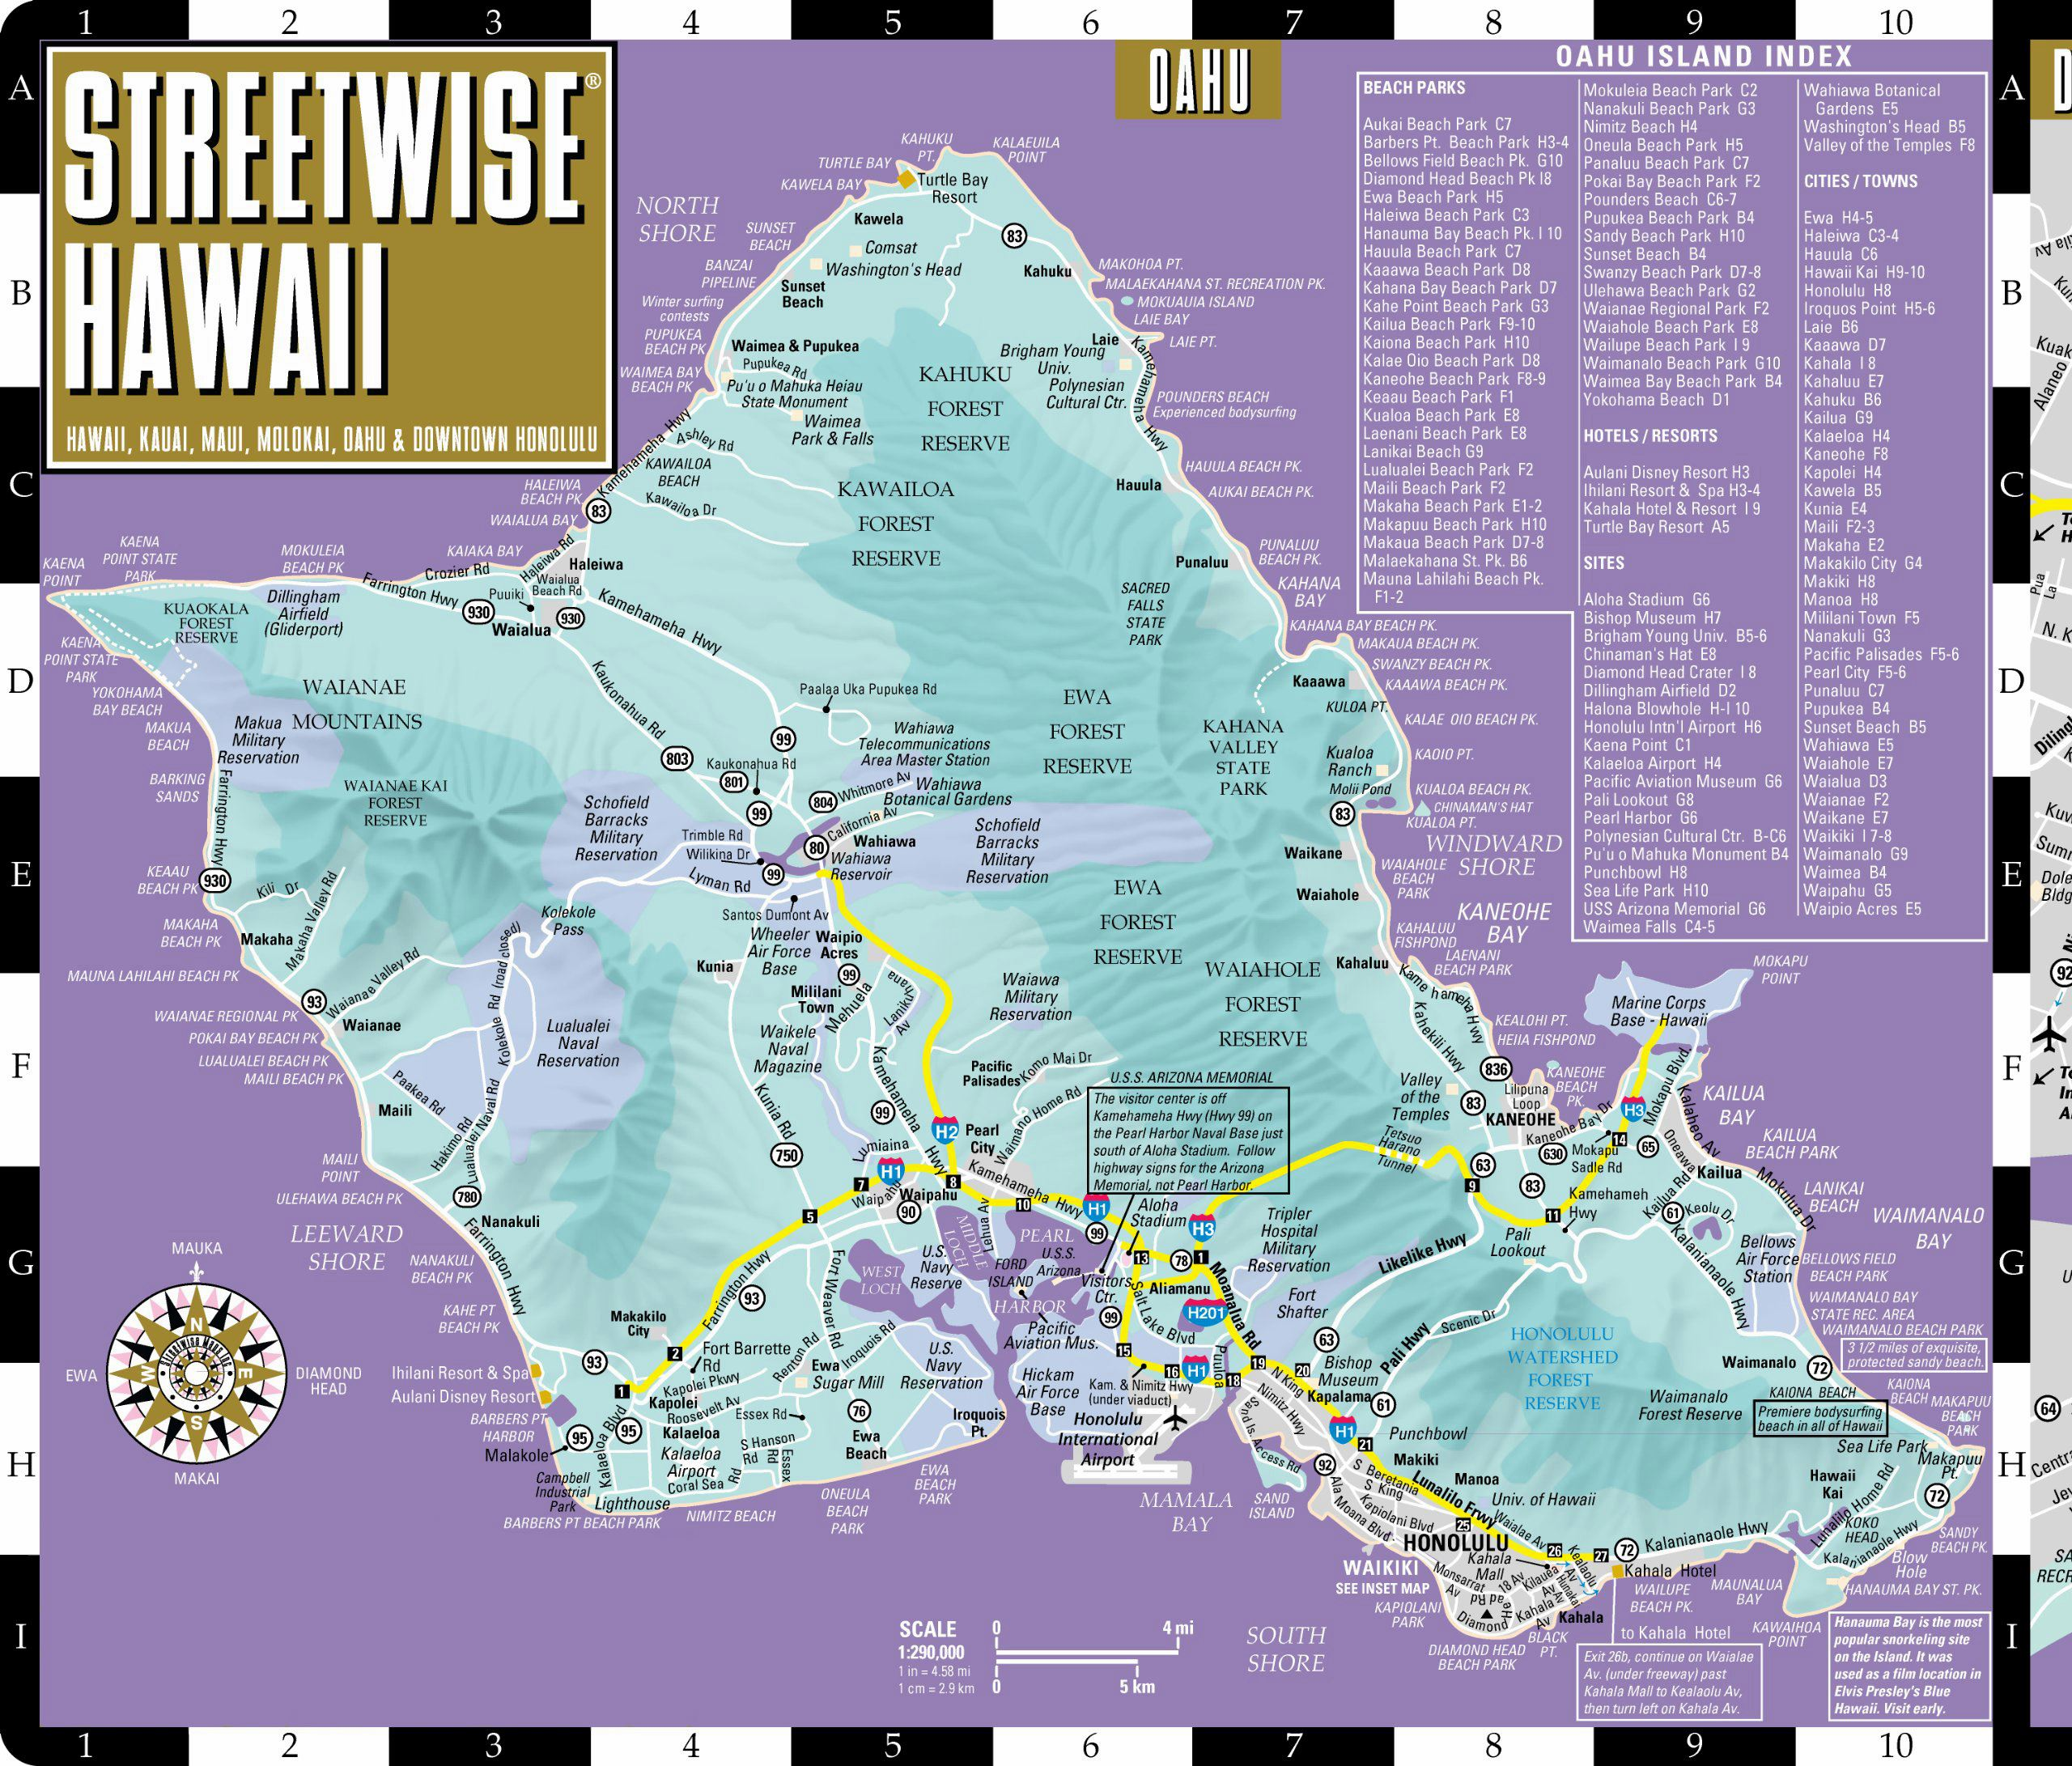 picture about Oahu Map Printable titled High Oahu Island Maps for Free of charge Down load and Print Significant